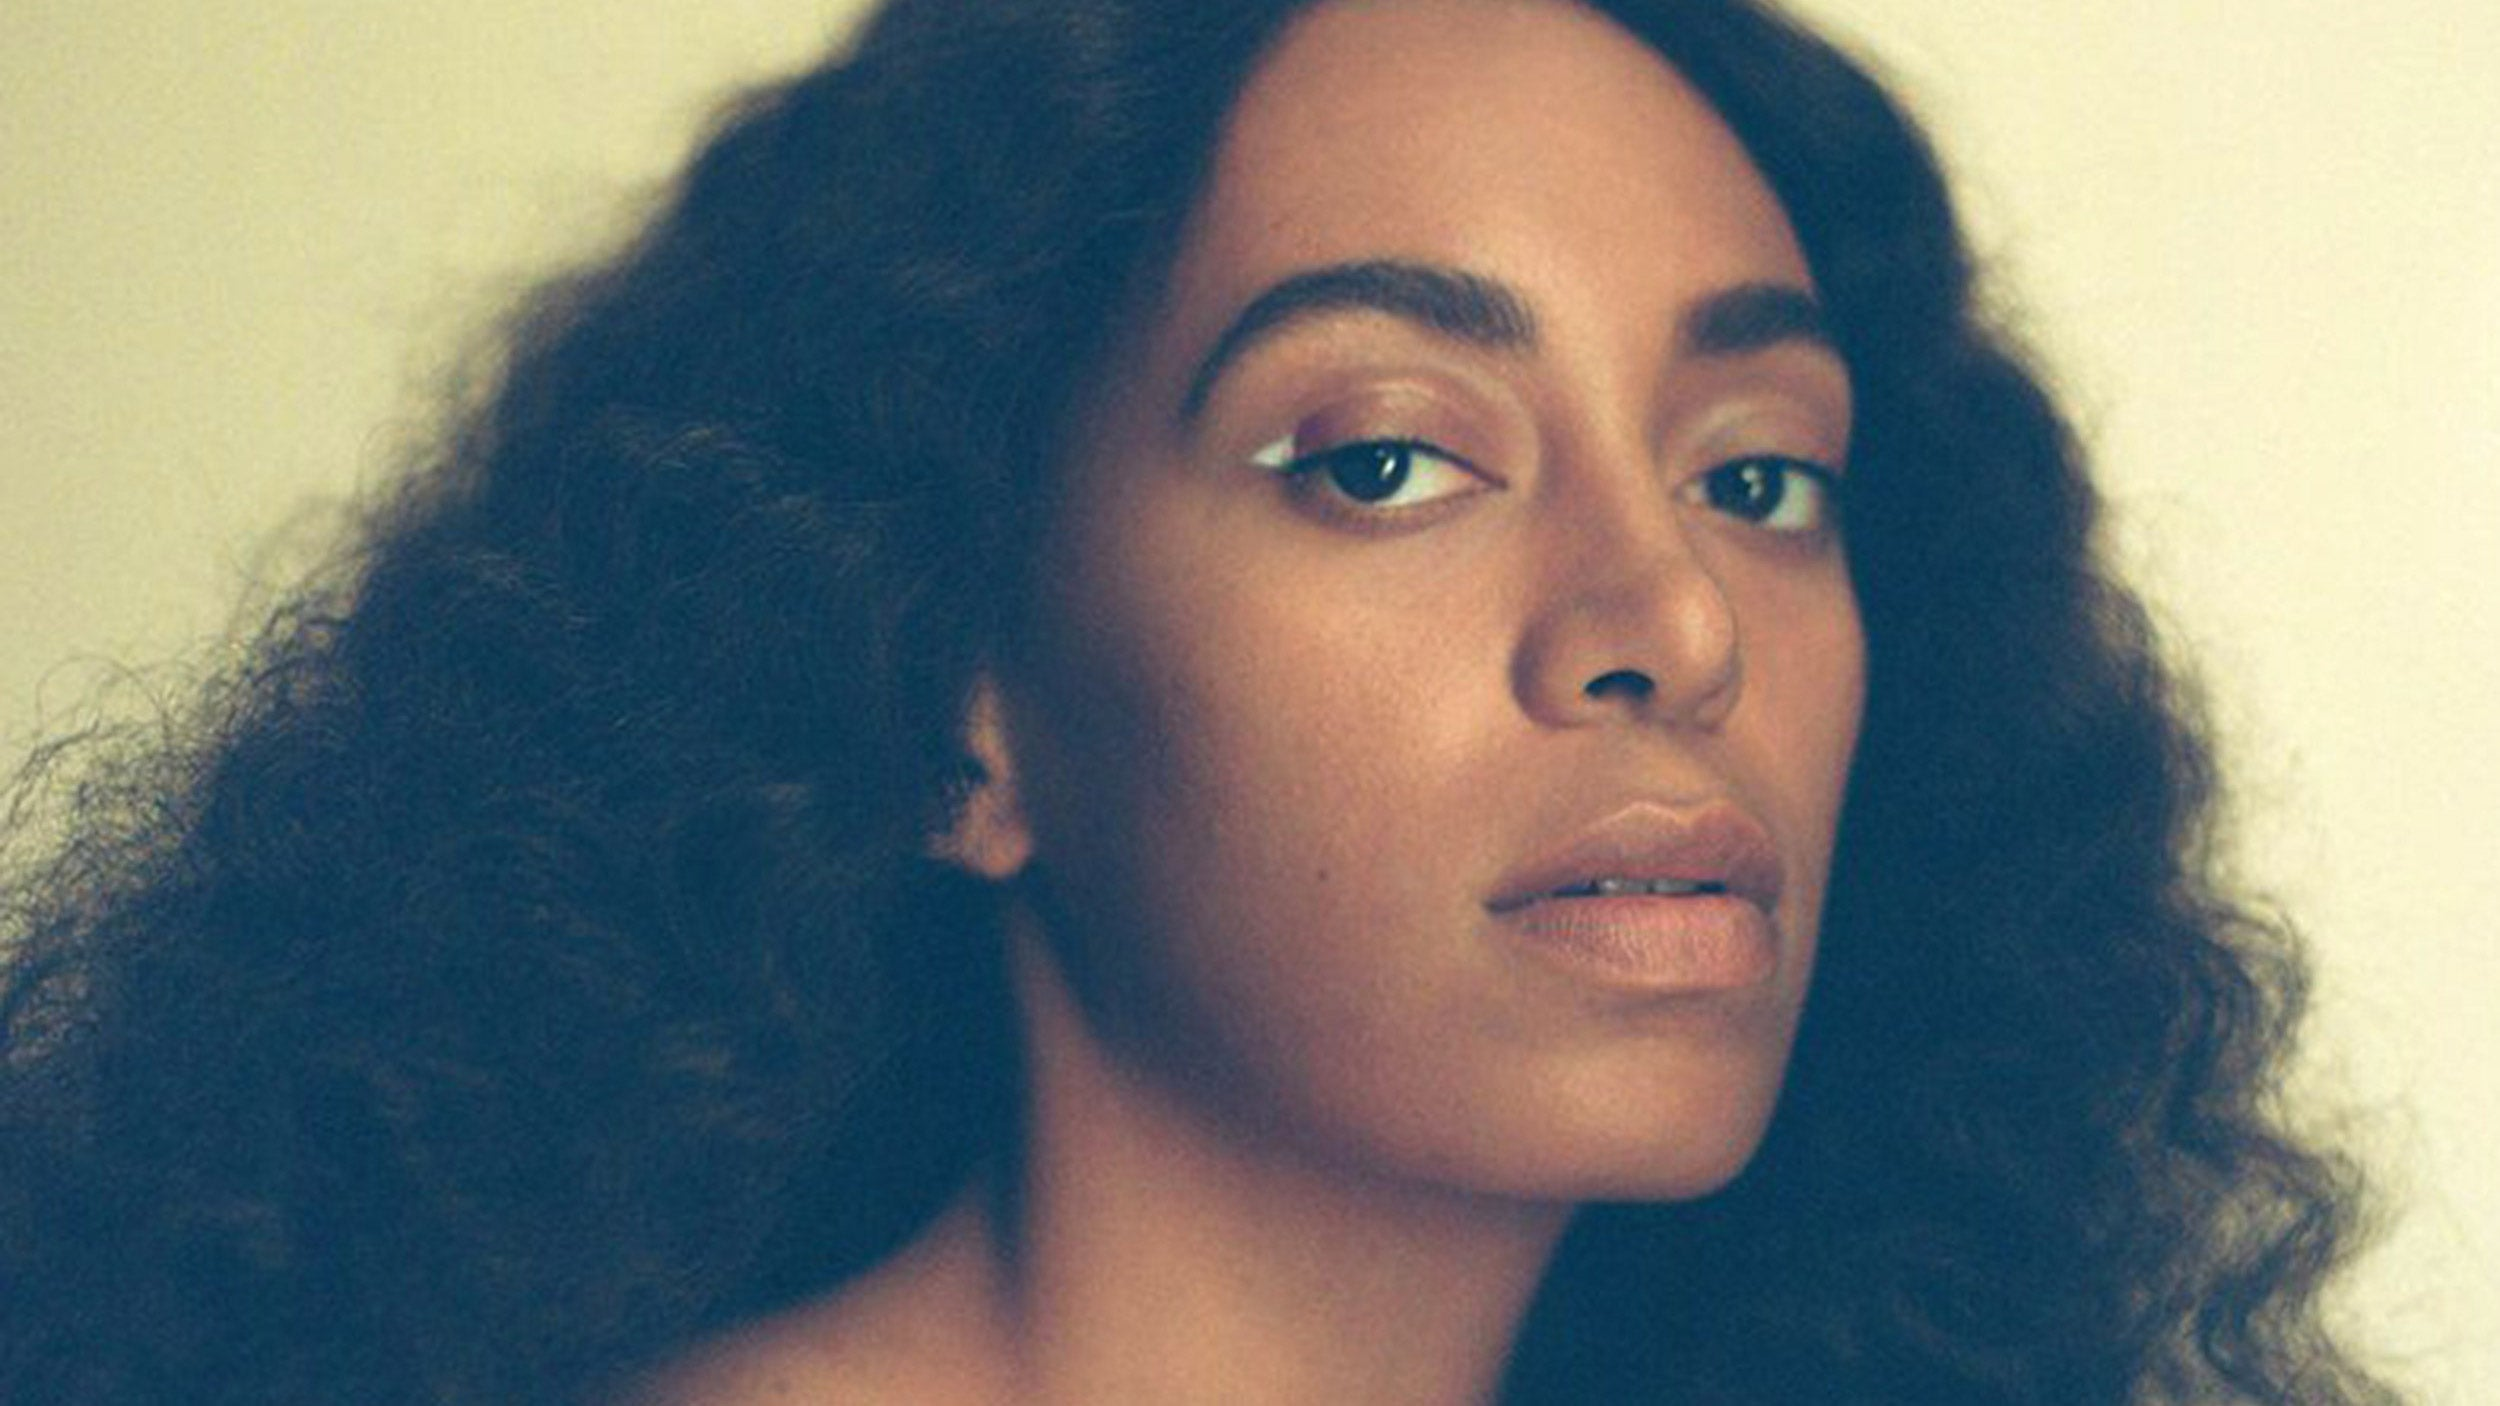 Grammy Award-winning recording artist, songwriter, and visual artist Solange Knowles has been named the Harvard Foundation'sartist of the year.